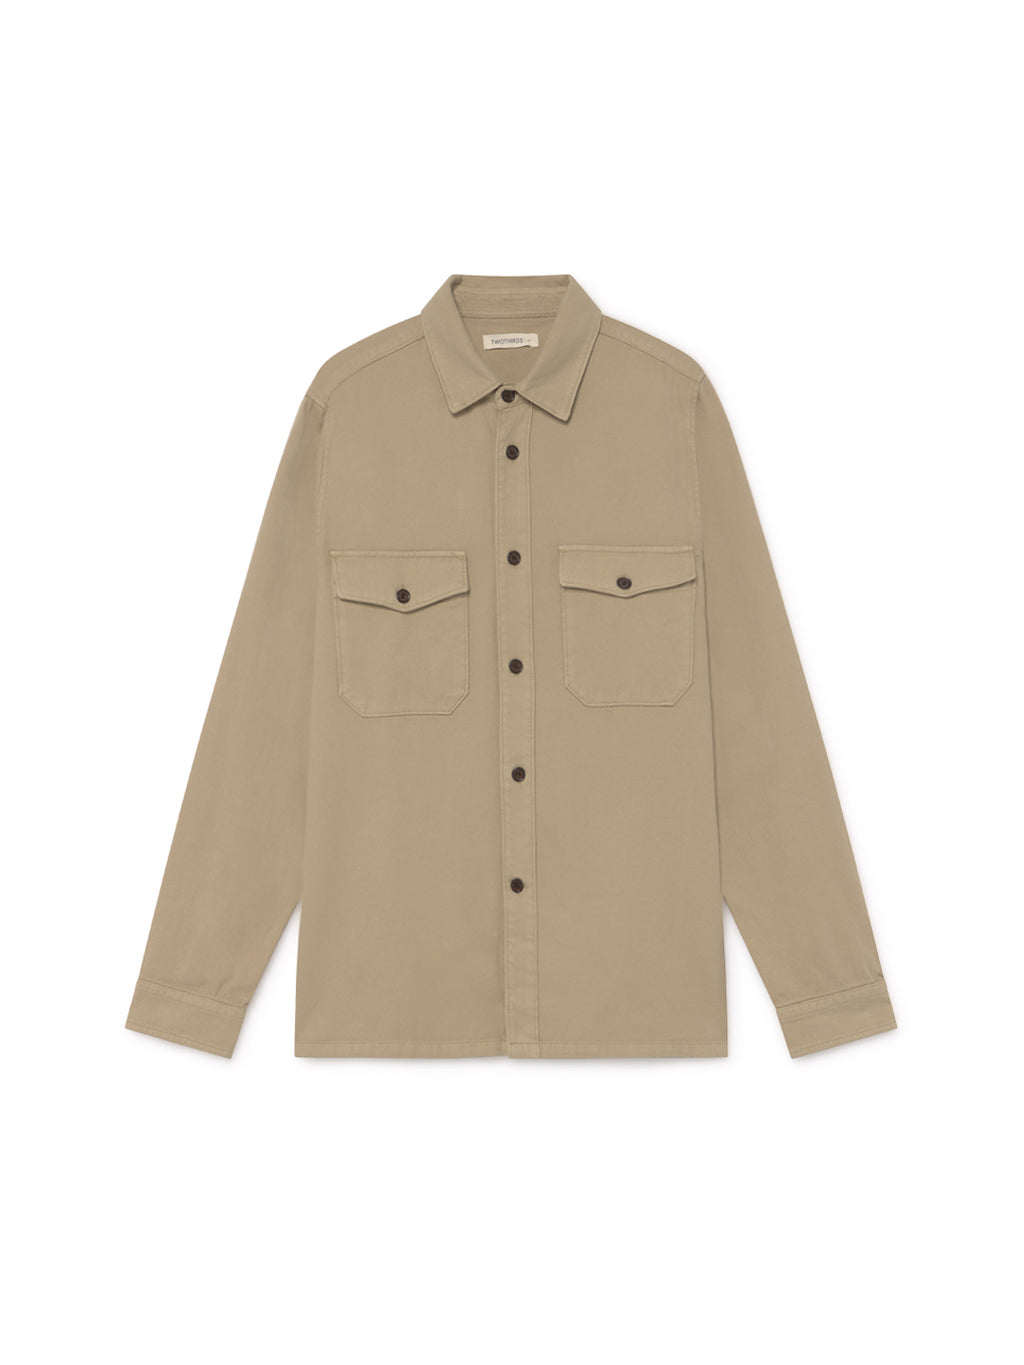 TWOTHIRDS Mens Shirt: Talcan - Stone front